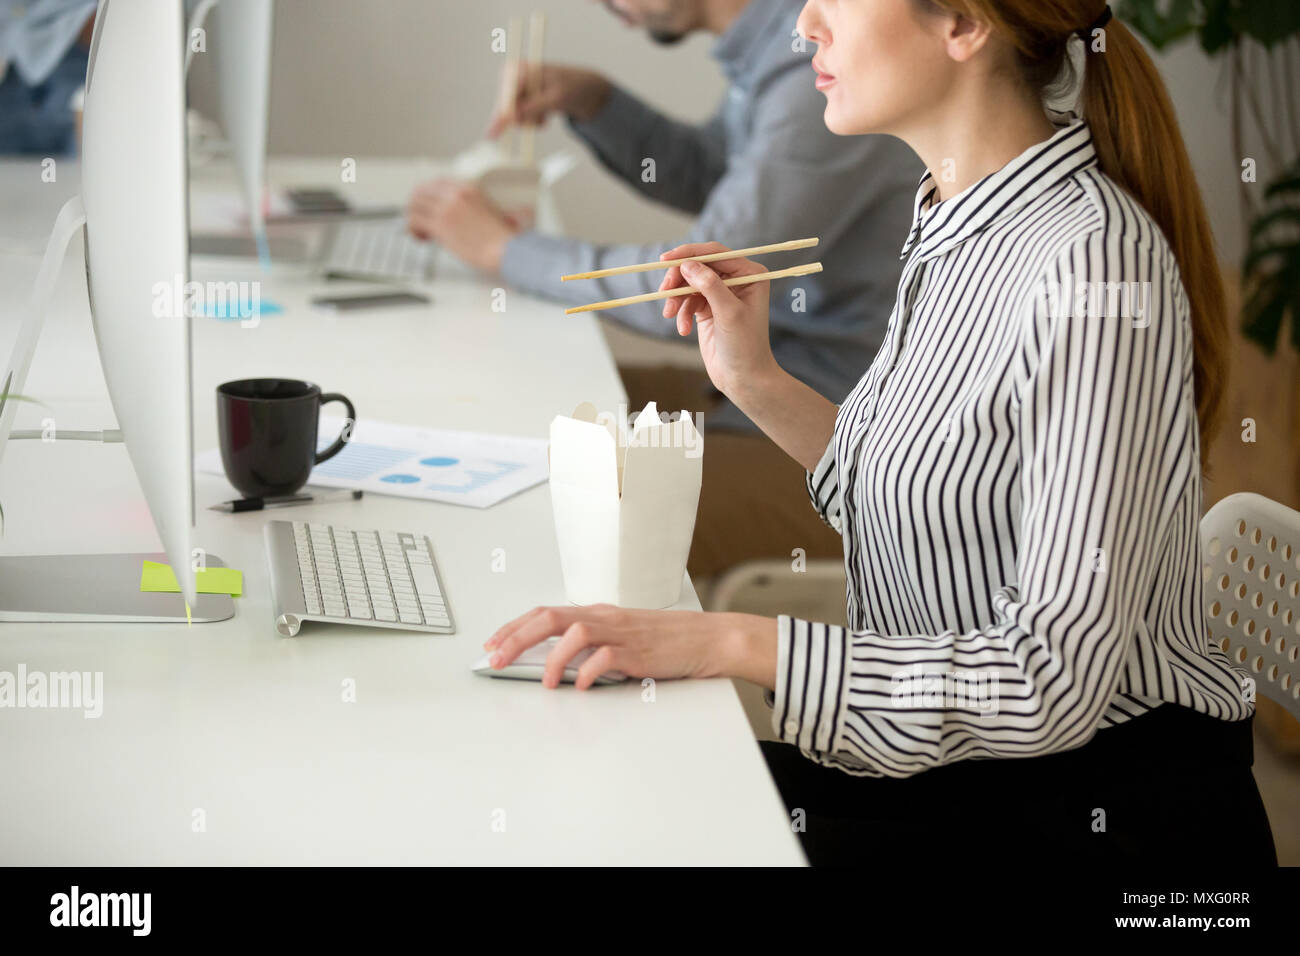 Focused female eating Asian food while working at desktop comput - Stock Image